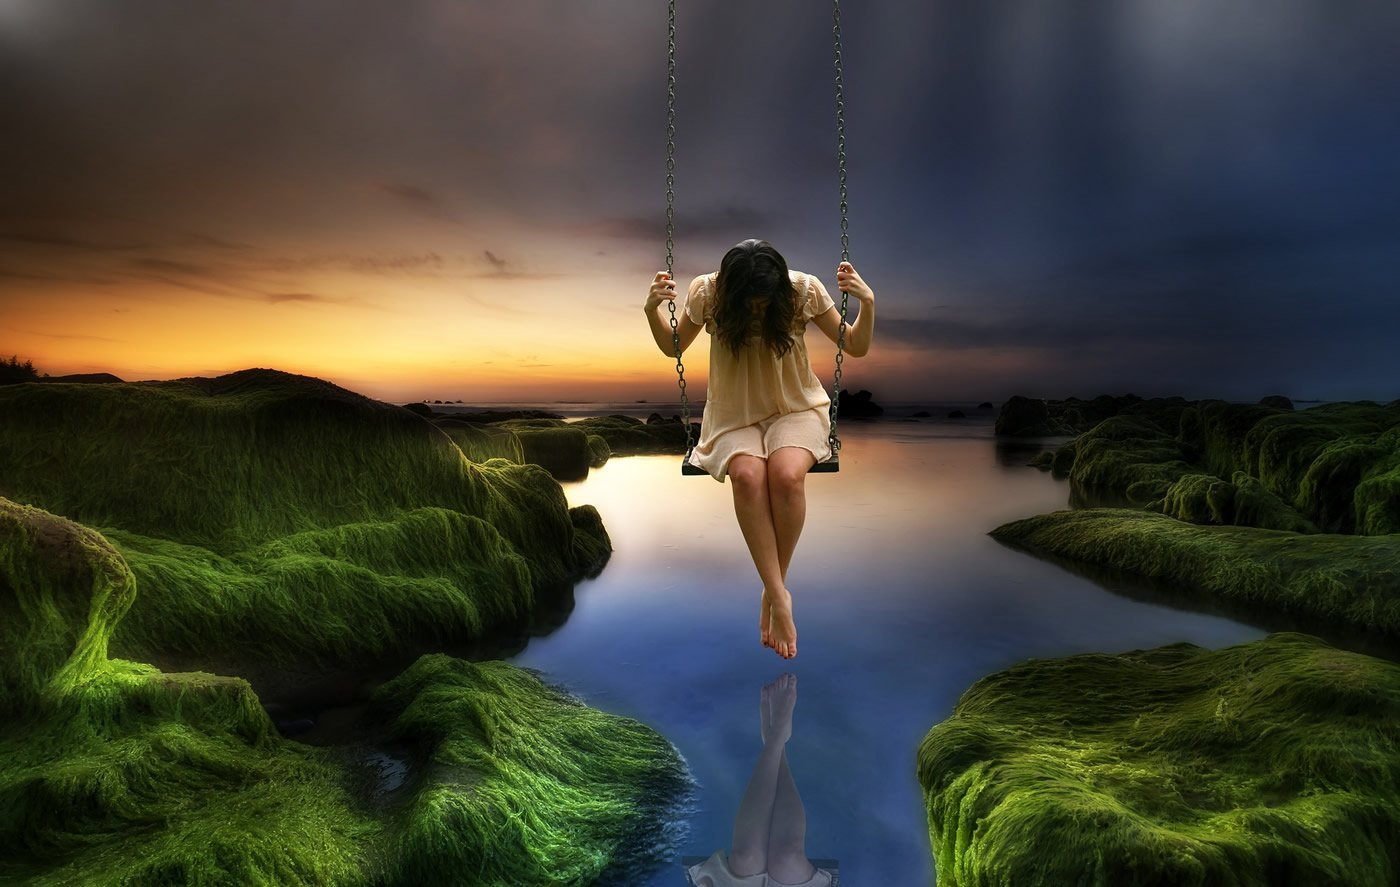 This shows a woman on a swing